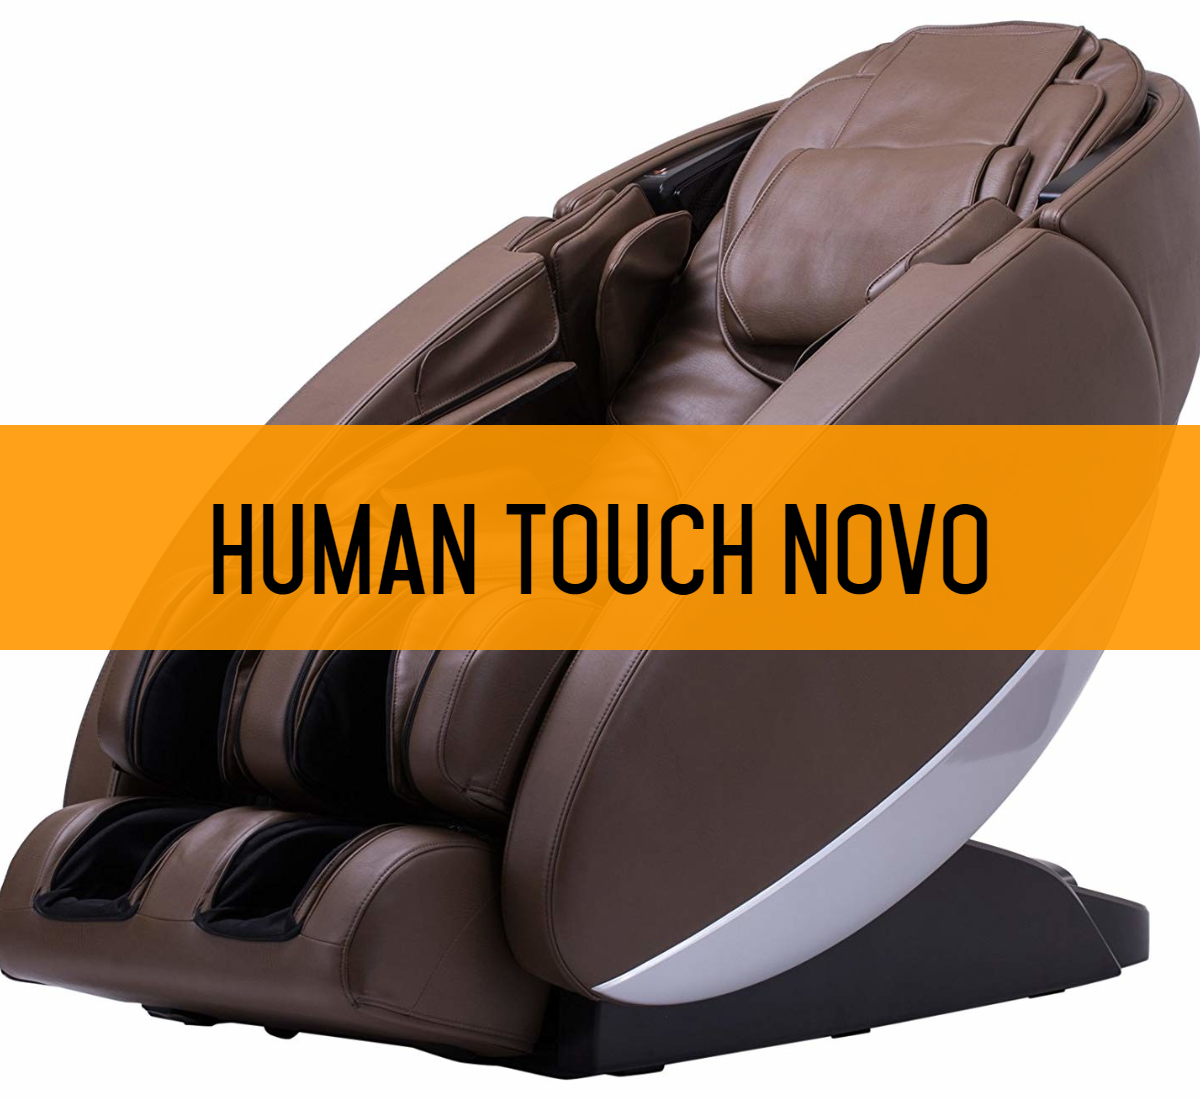 Human Touch Novo